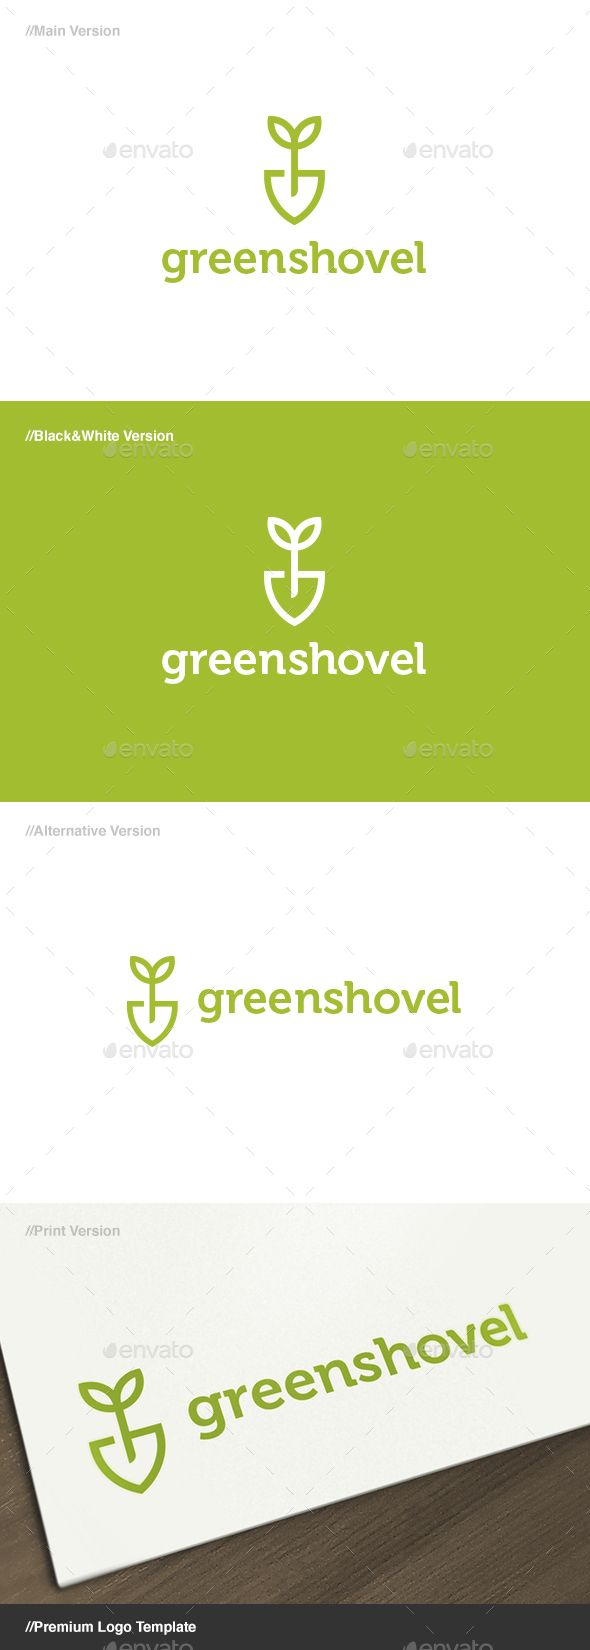 Green Shovel Logo By Domibit Green Shovel: Is A Logo That Can Be Used In  Companies That Provide Services Gardening, Gardening Supply Stores, ...